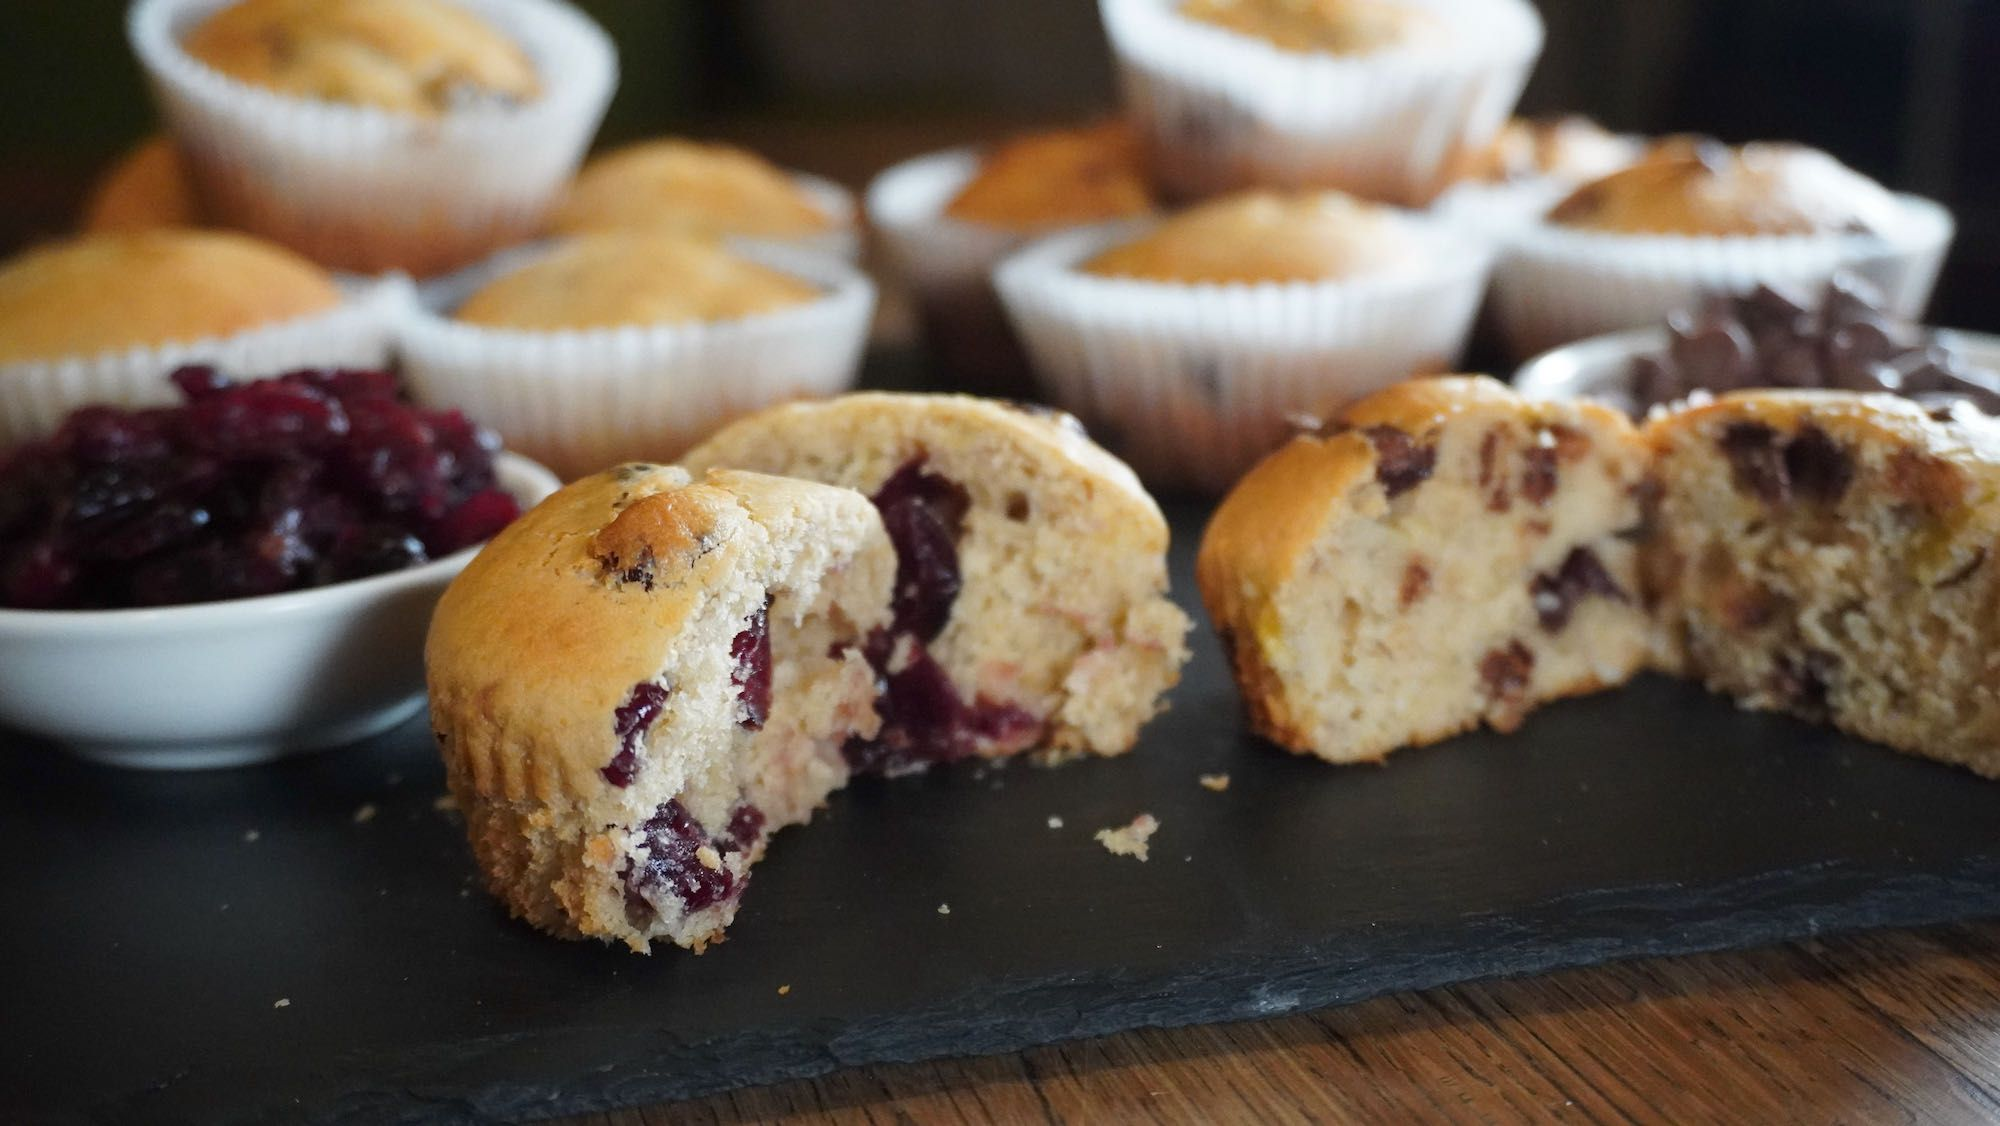 Spelt Banana Muffins: 2 bananas, 2 ways choc chip & cranberries